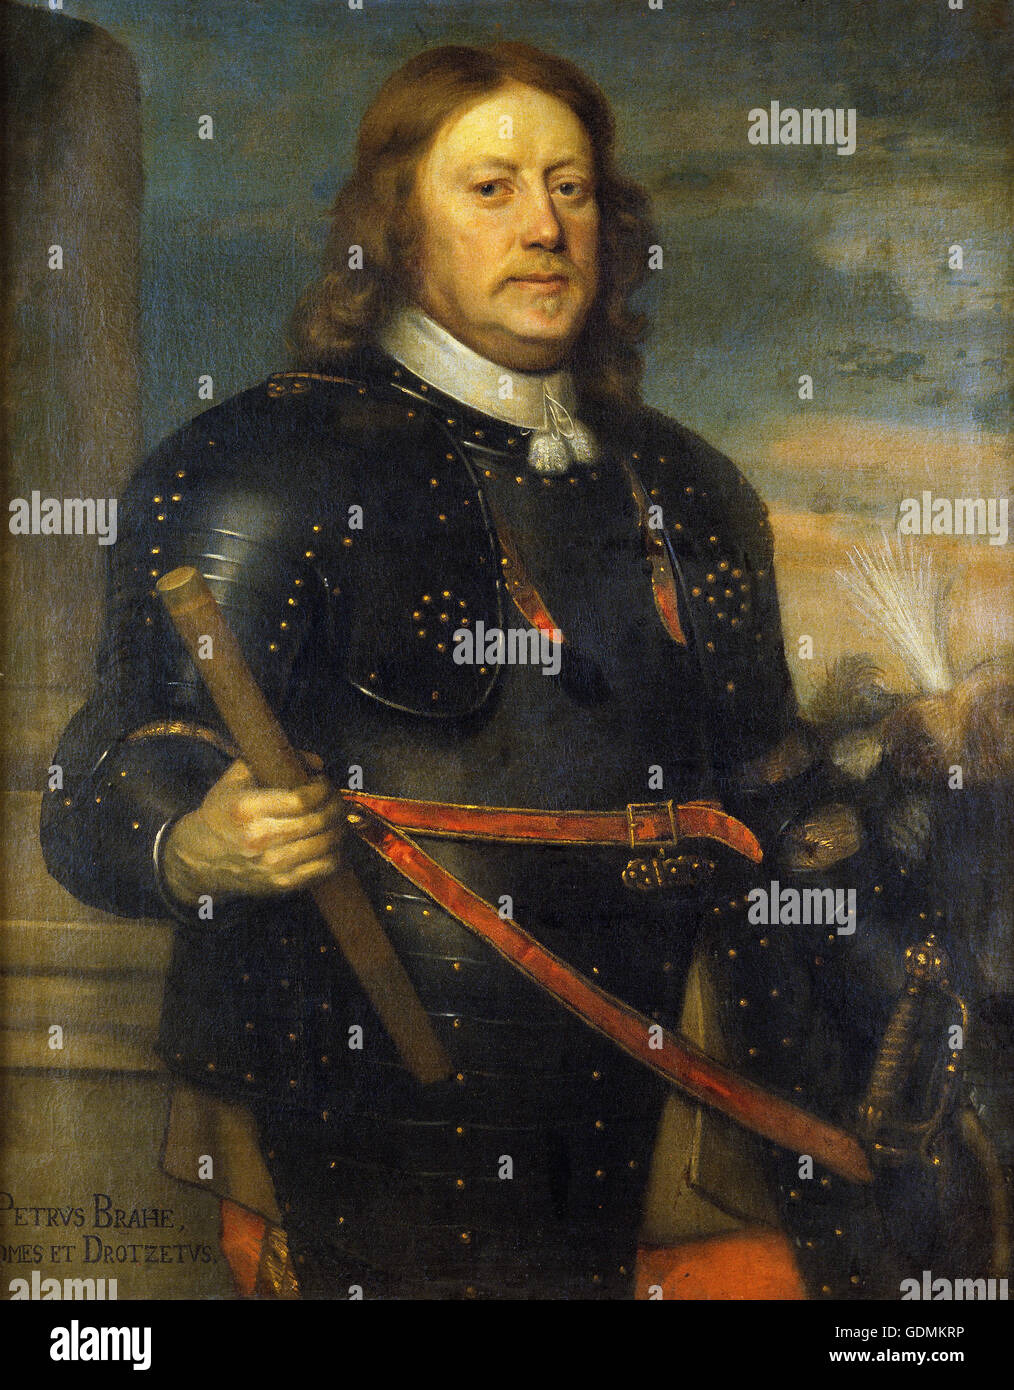 David Beck - Per Brahe the Younger (1602 – 80) - Stock Image